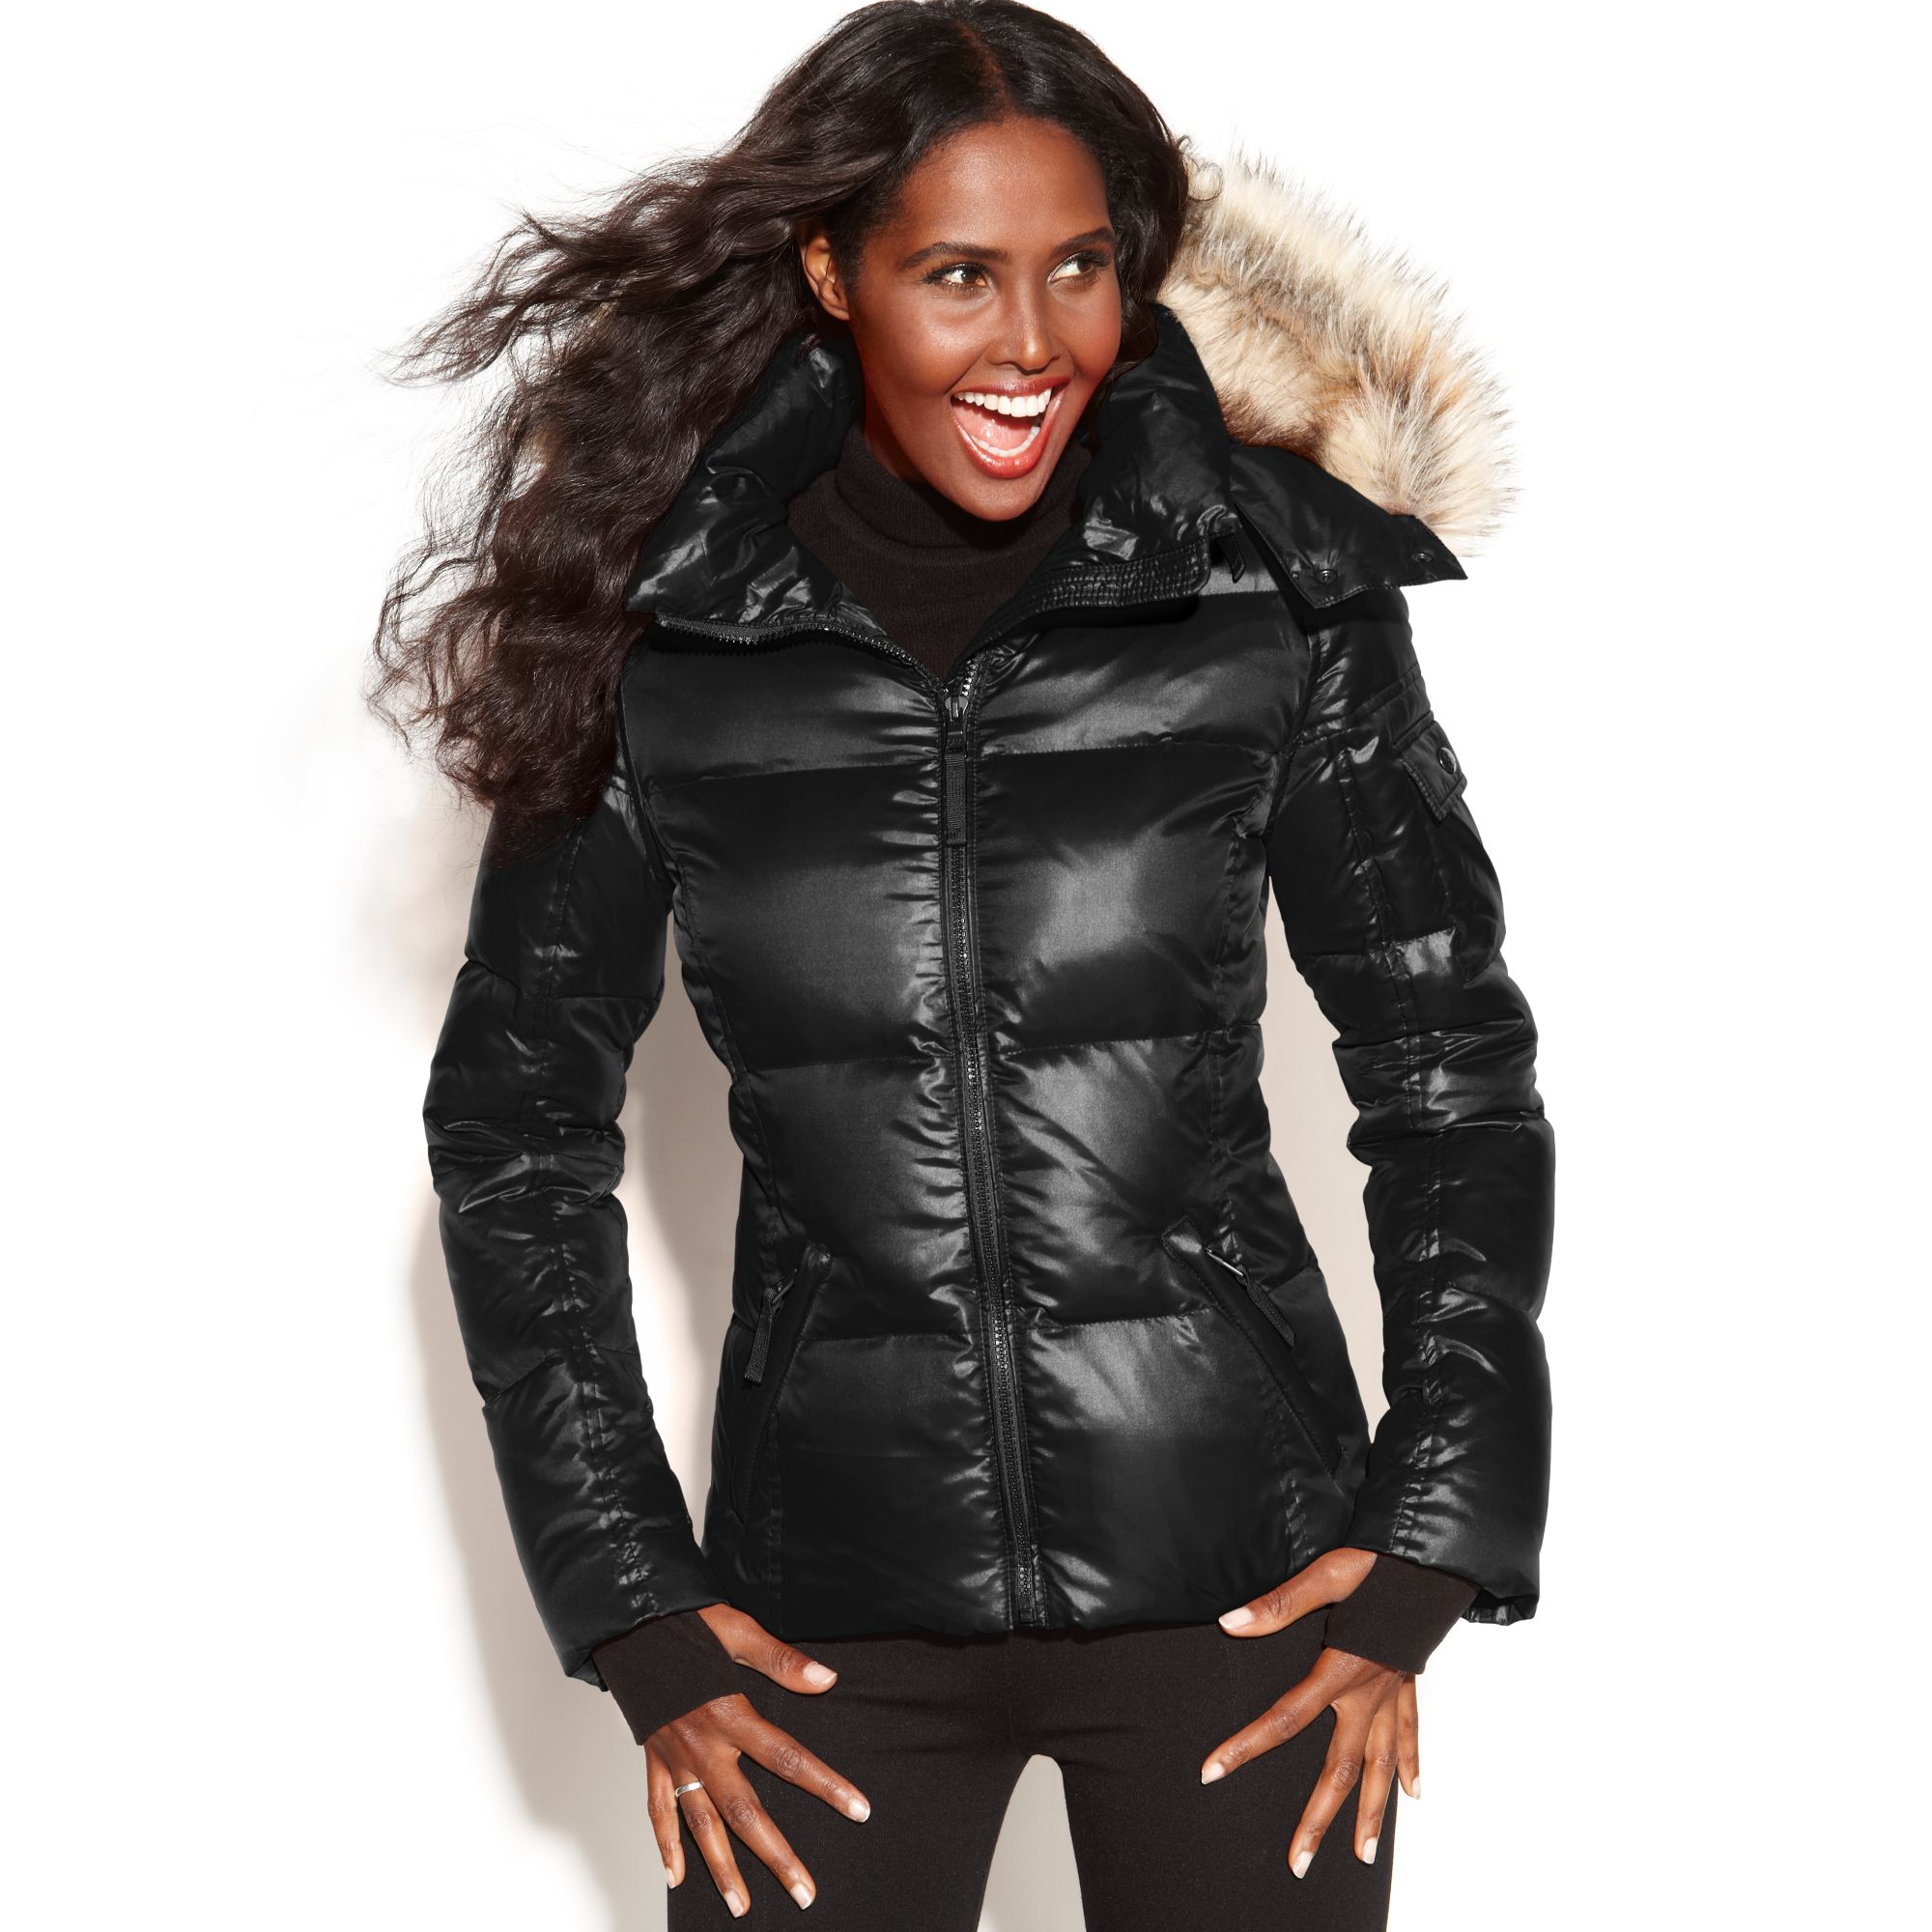 Puffer Jacket With Fur Hood - Jacket To-8704